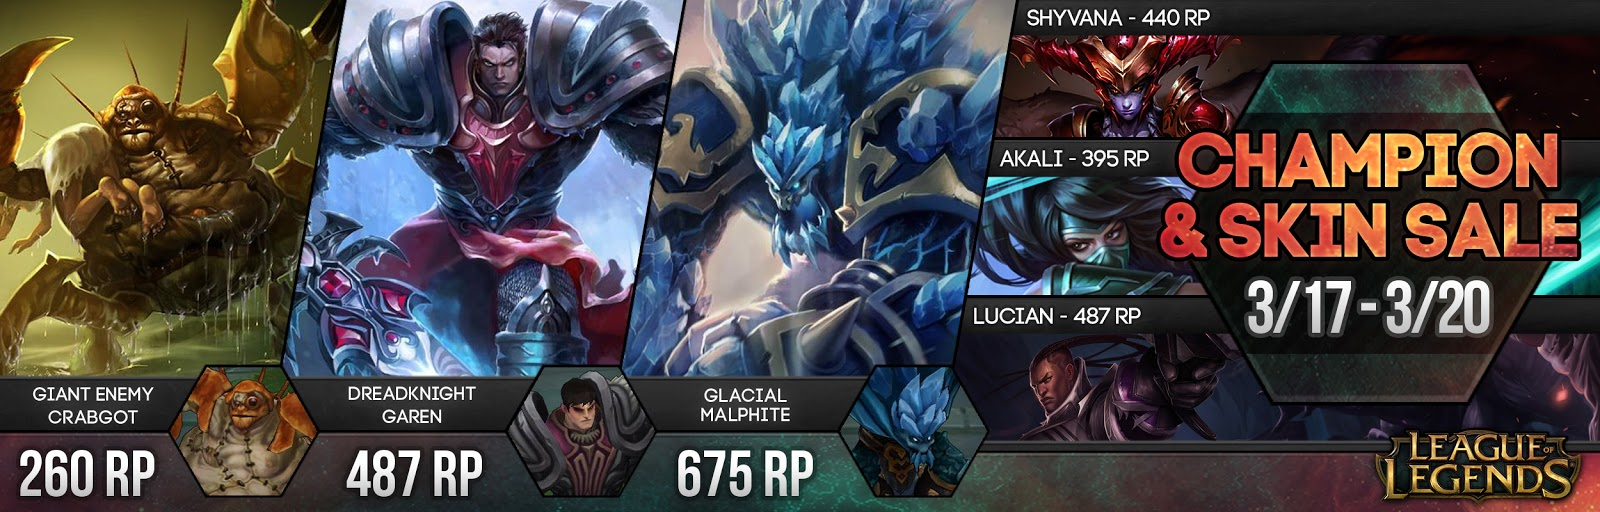 Surrender at 20: Champion and Skin Sale 3/17 - 3/20